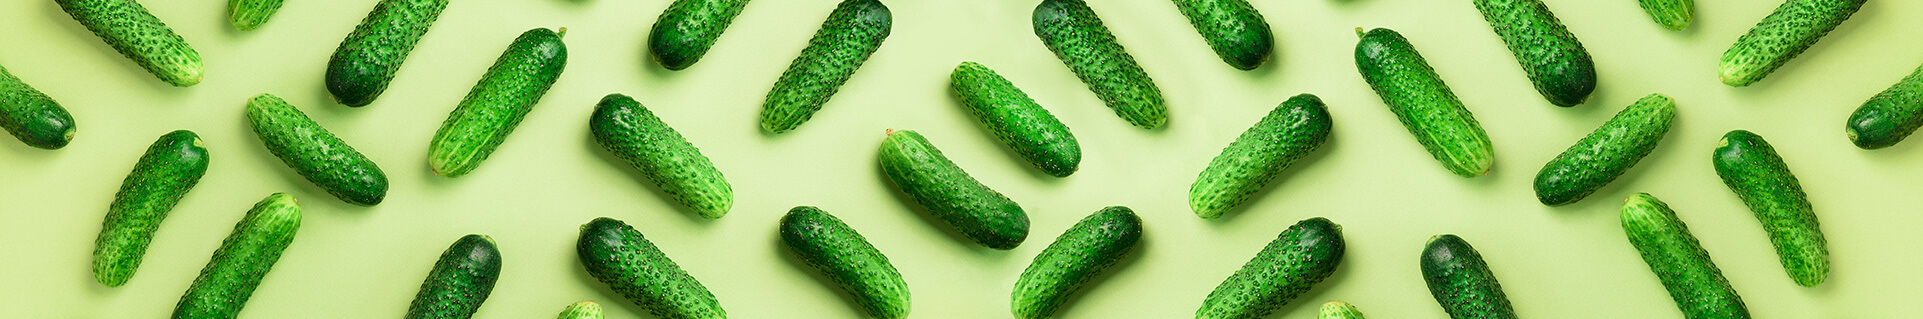 Pickles against a light green background